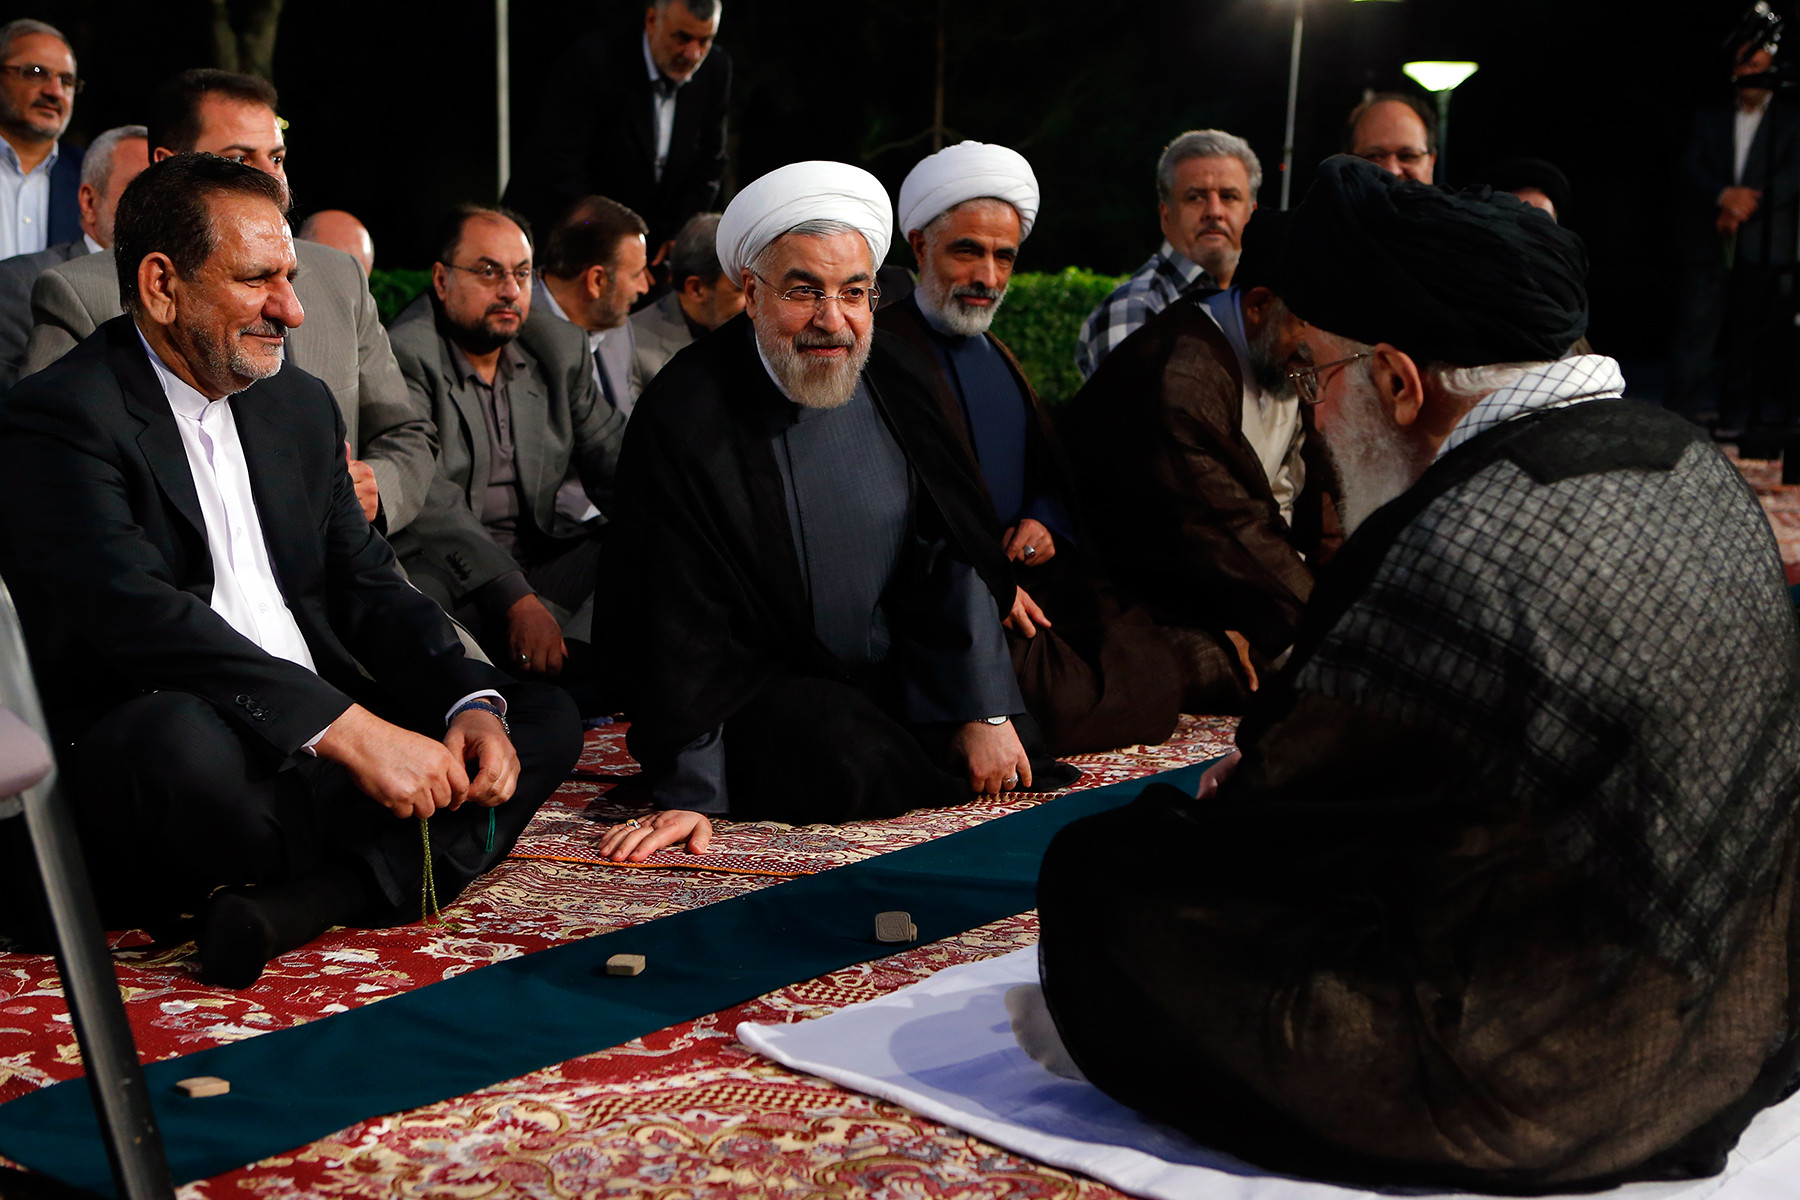 Iranian president Hassan Rouhani and his cabinet meet with Ayatollah Khamenei. Photo: Khamenei.ir